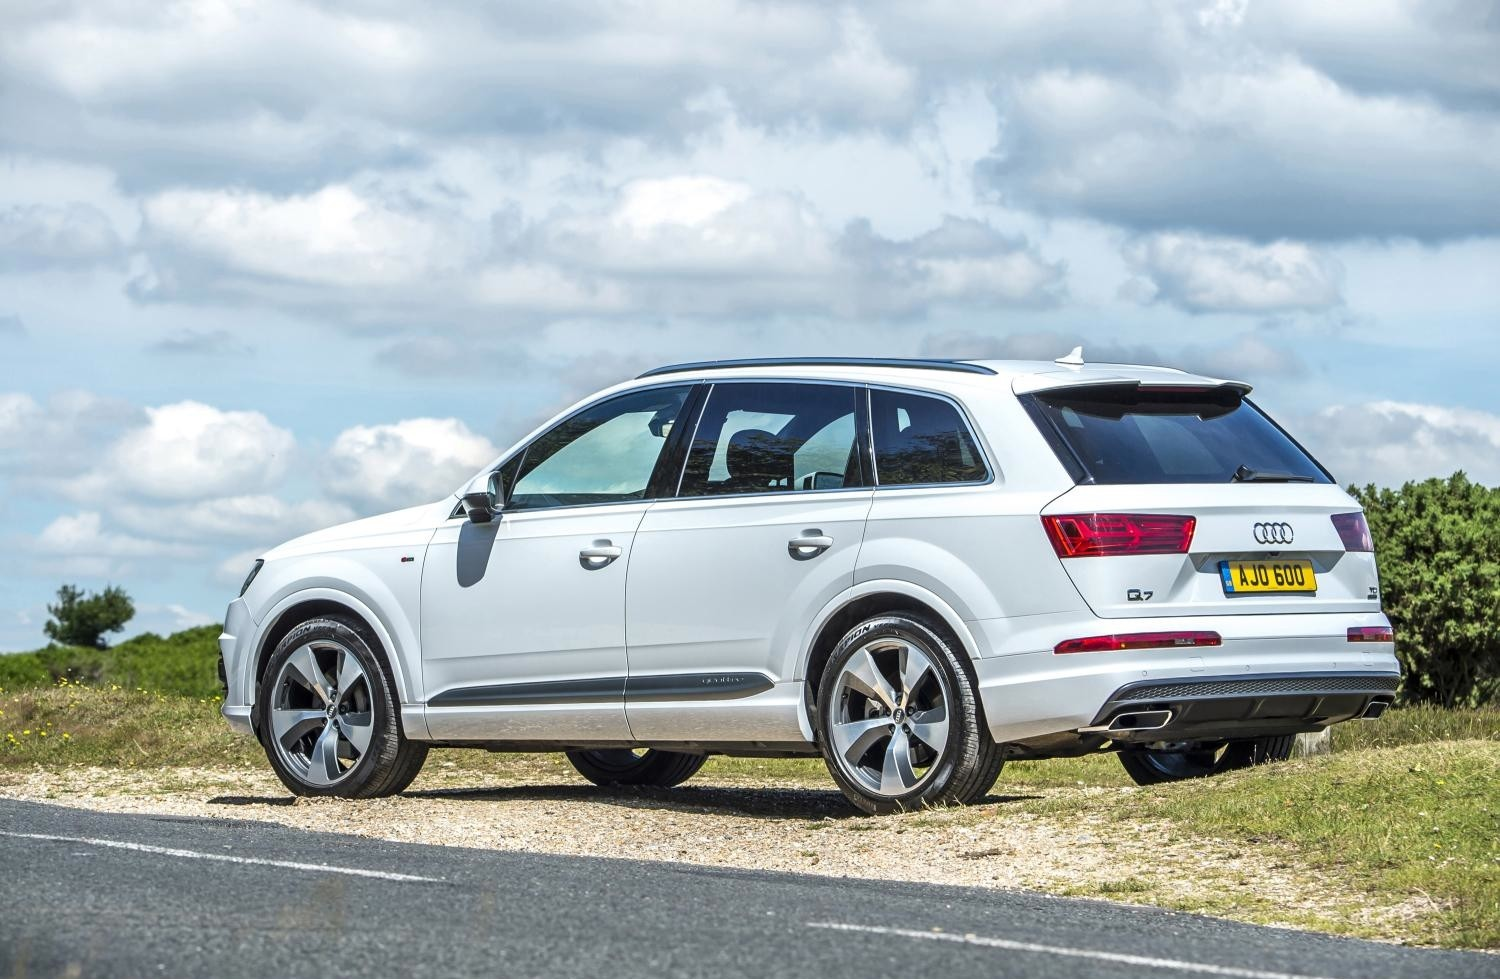 Audi Launches Cheaper Q7 SUV Model with 218 HP 3.0 TDI in Britain - autoevolution